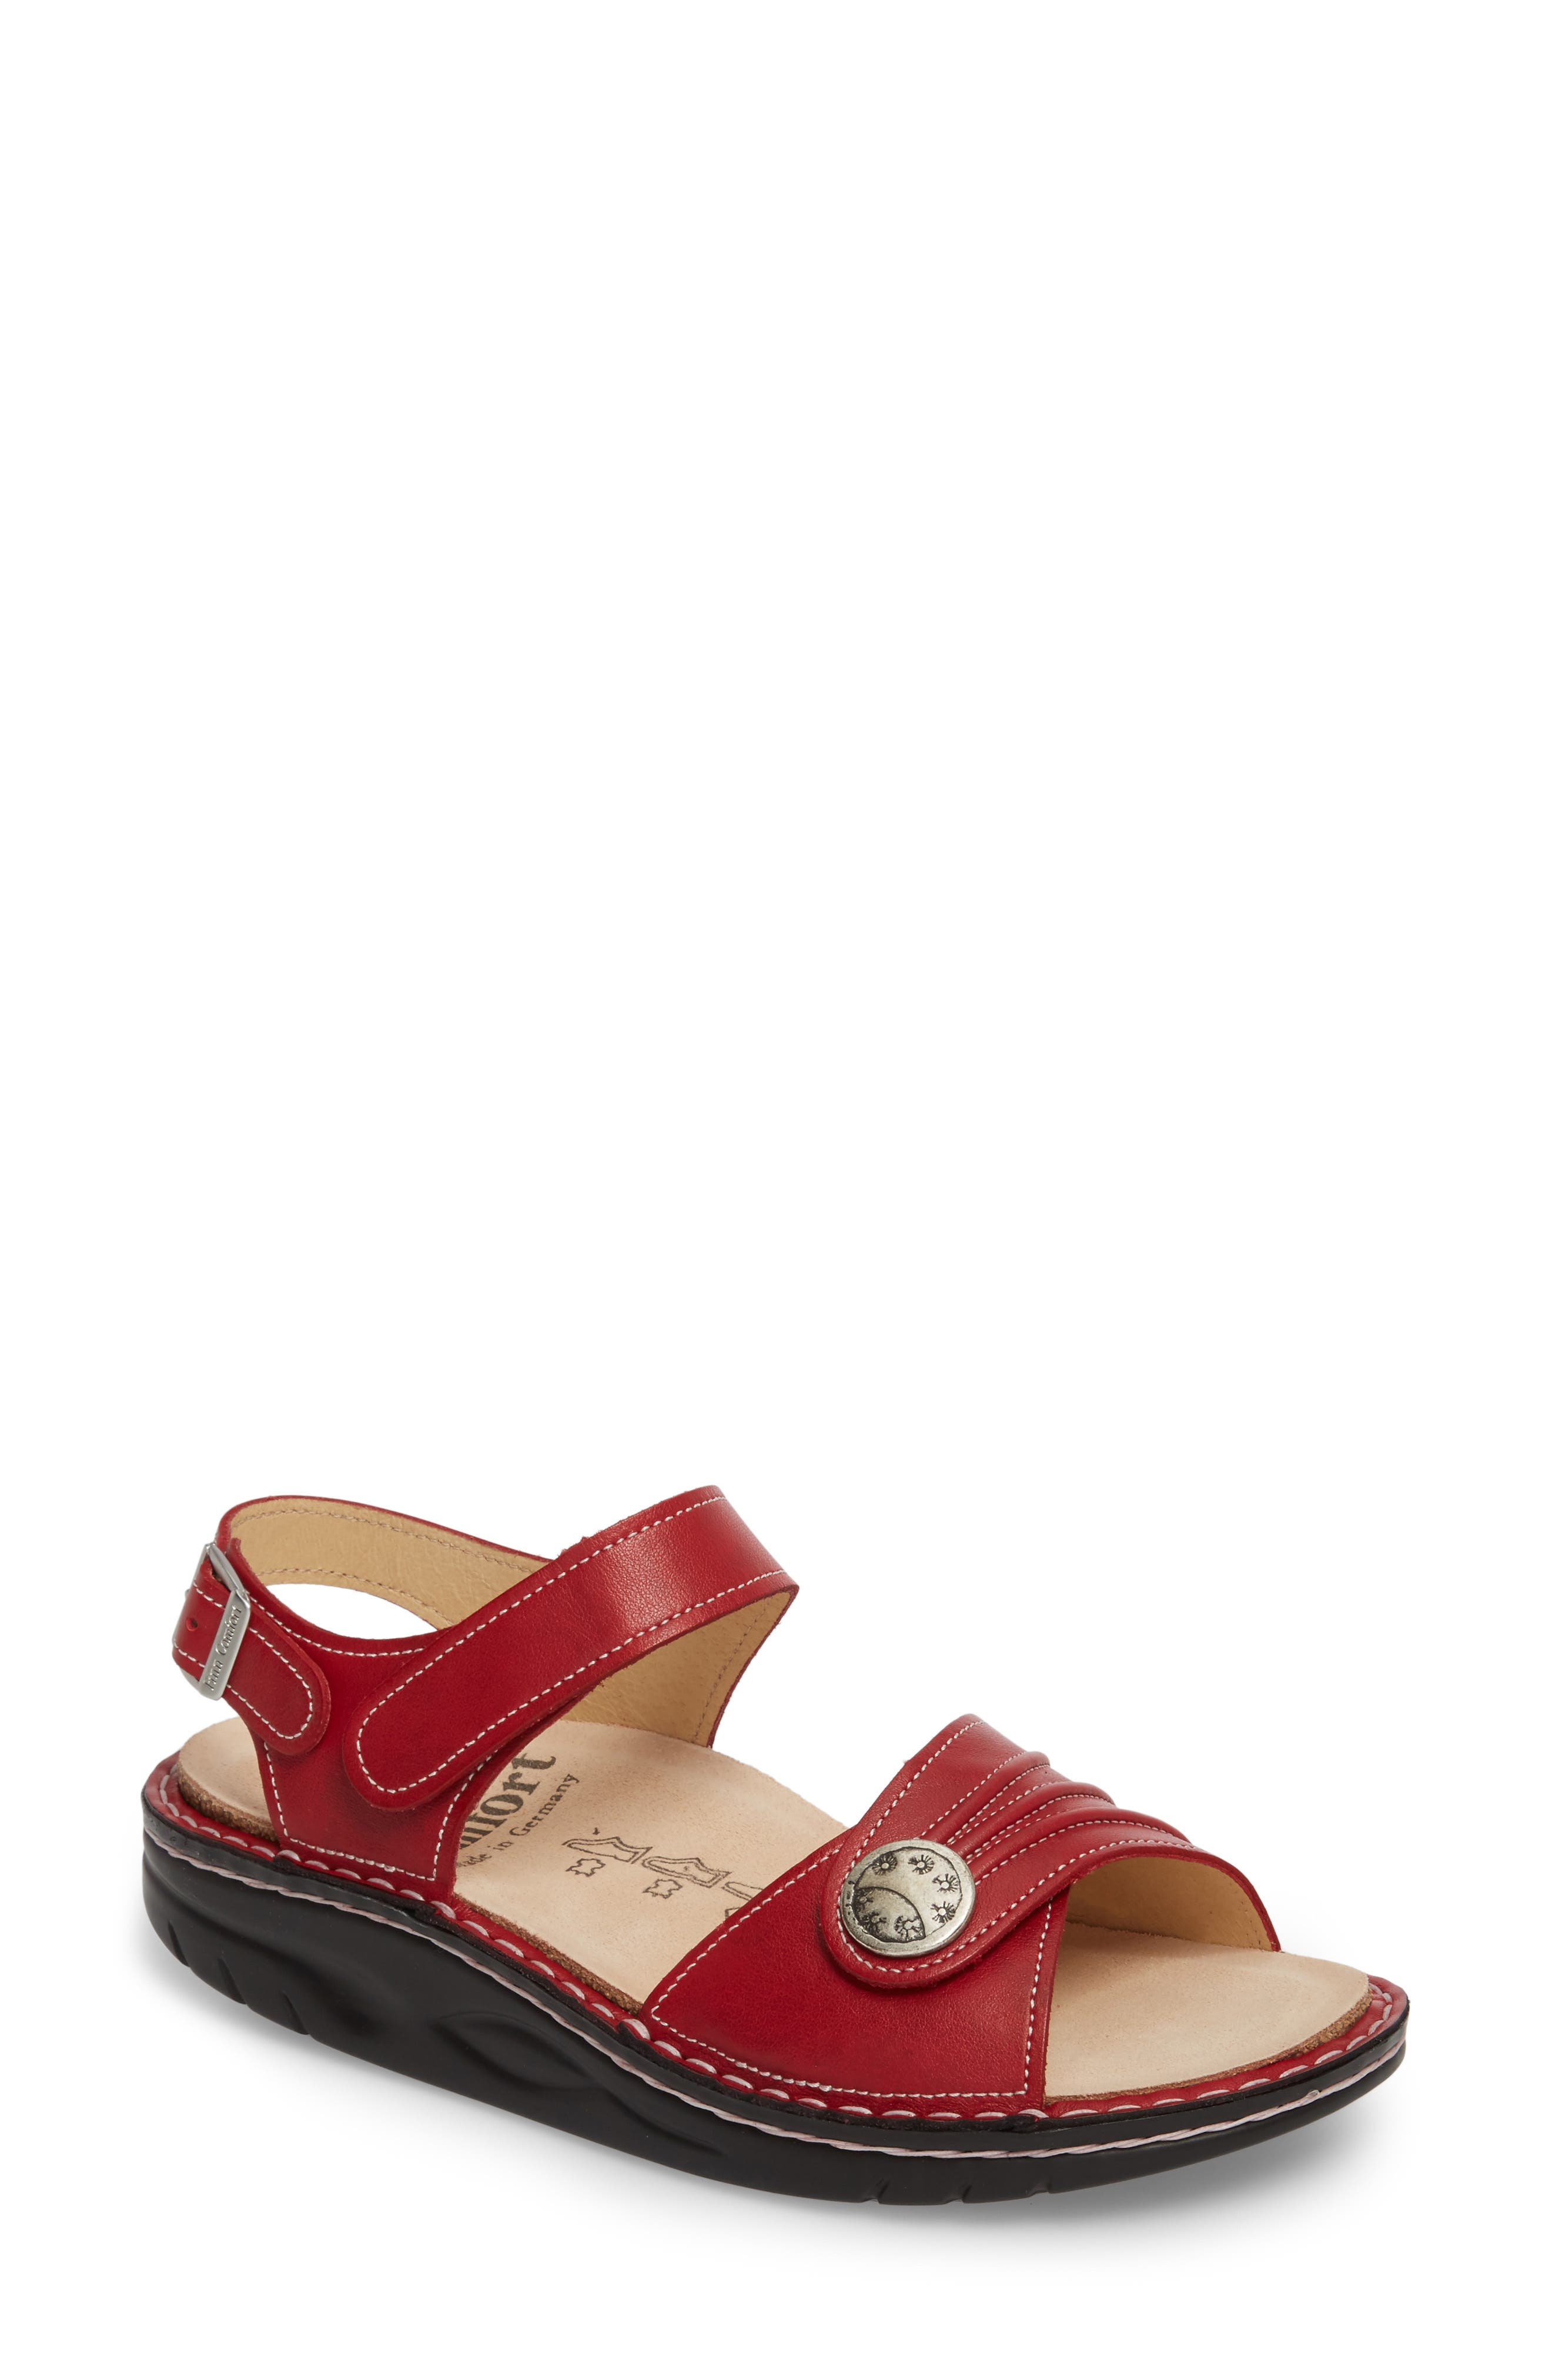 FINNAMIC by Finn Comfort 'Sausalito' Sandal,                         Main,                         color, RED LEATHER